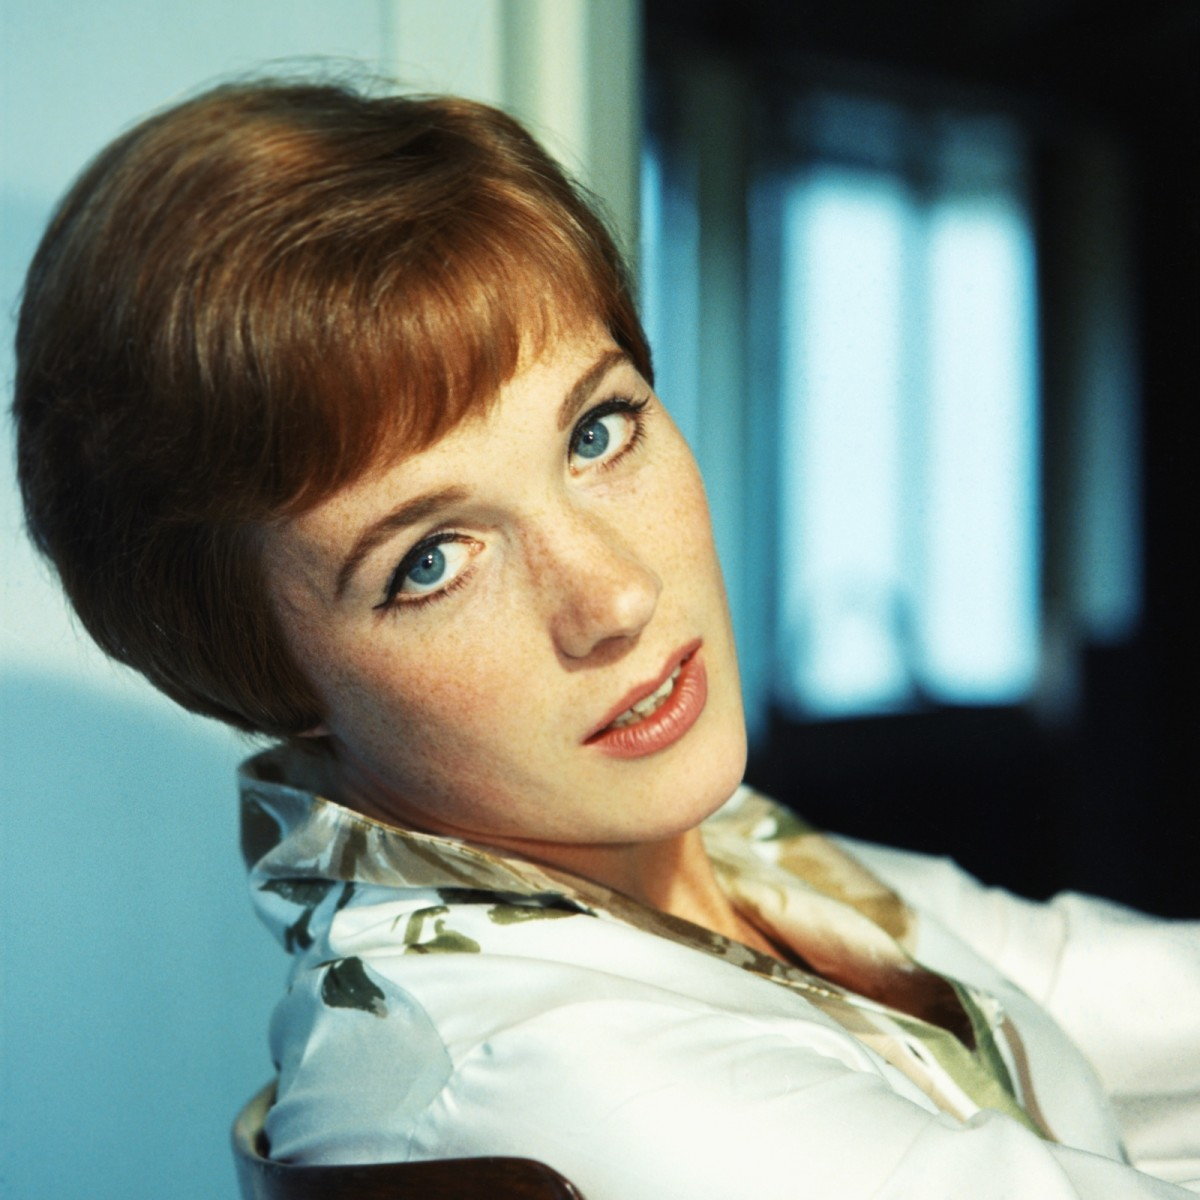 Julie Andrews photo via Getty Images